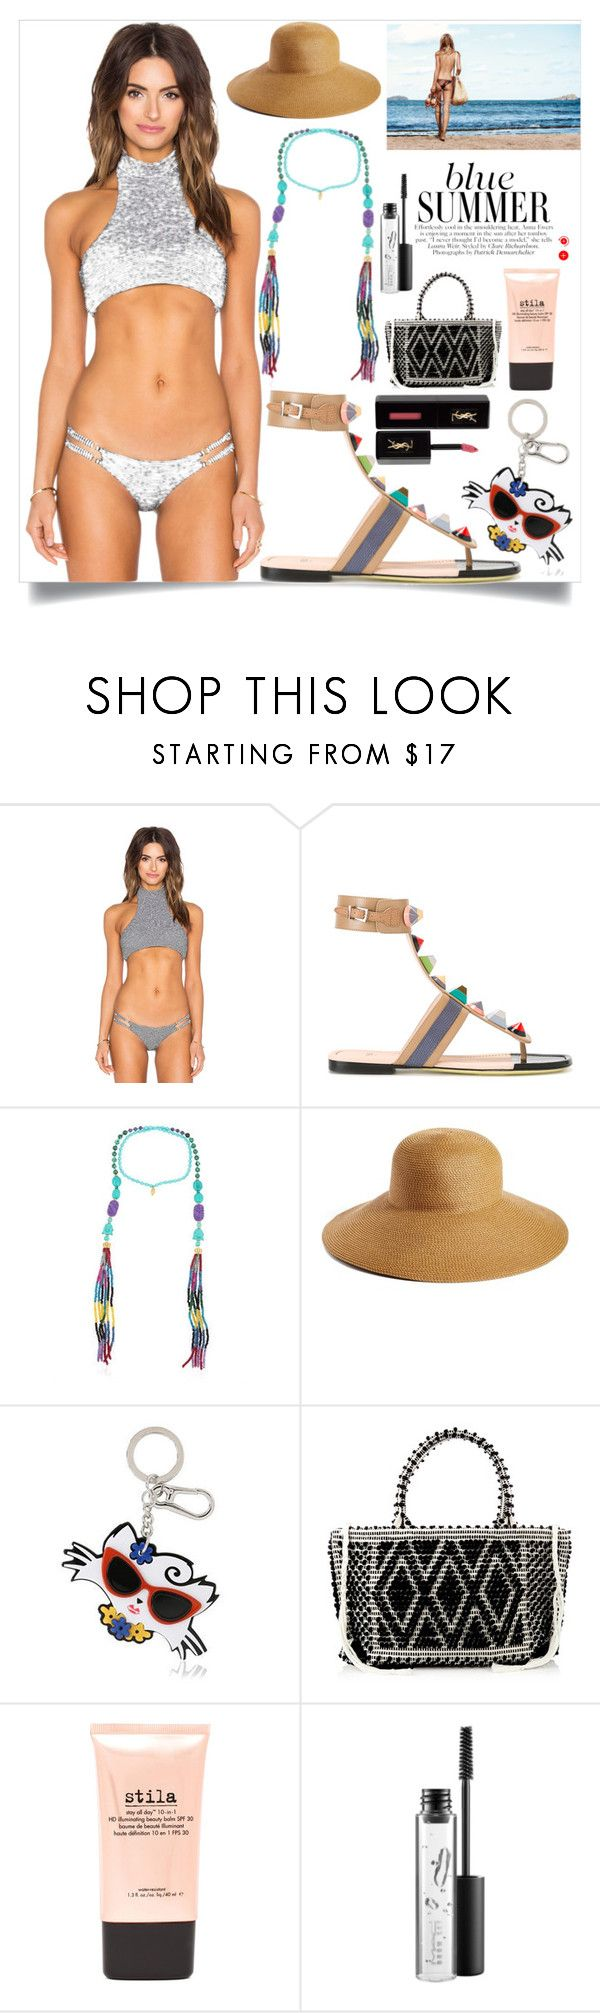 """Summer wear"" by camry-brynn ❤ liked on Polyvore featuring Beach Riot, Fendi, Katerina Psoma, Eric Javits, Karl Lagerfeld, Antonello Tedde, Stila, MAC Cosmetics and Yves Saint Laurent"